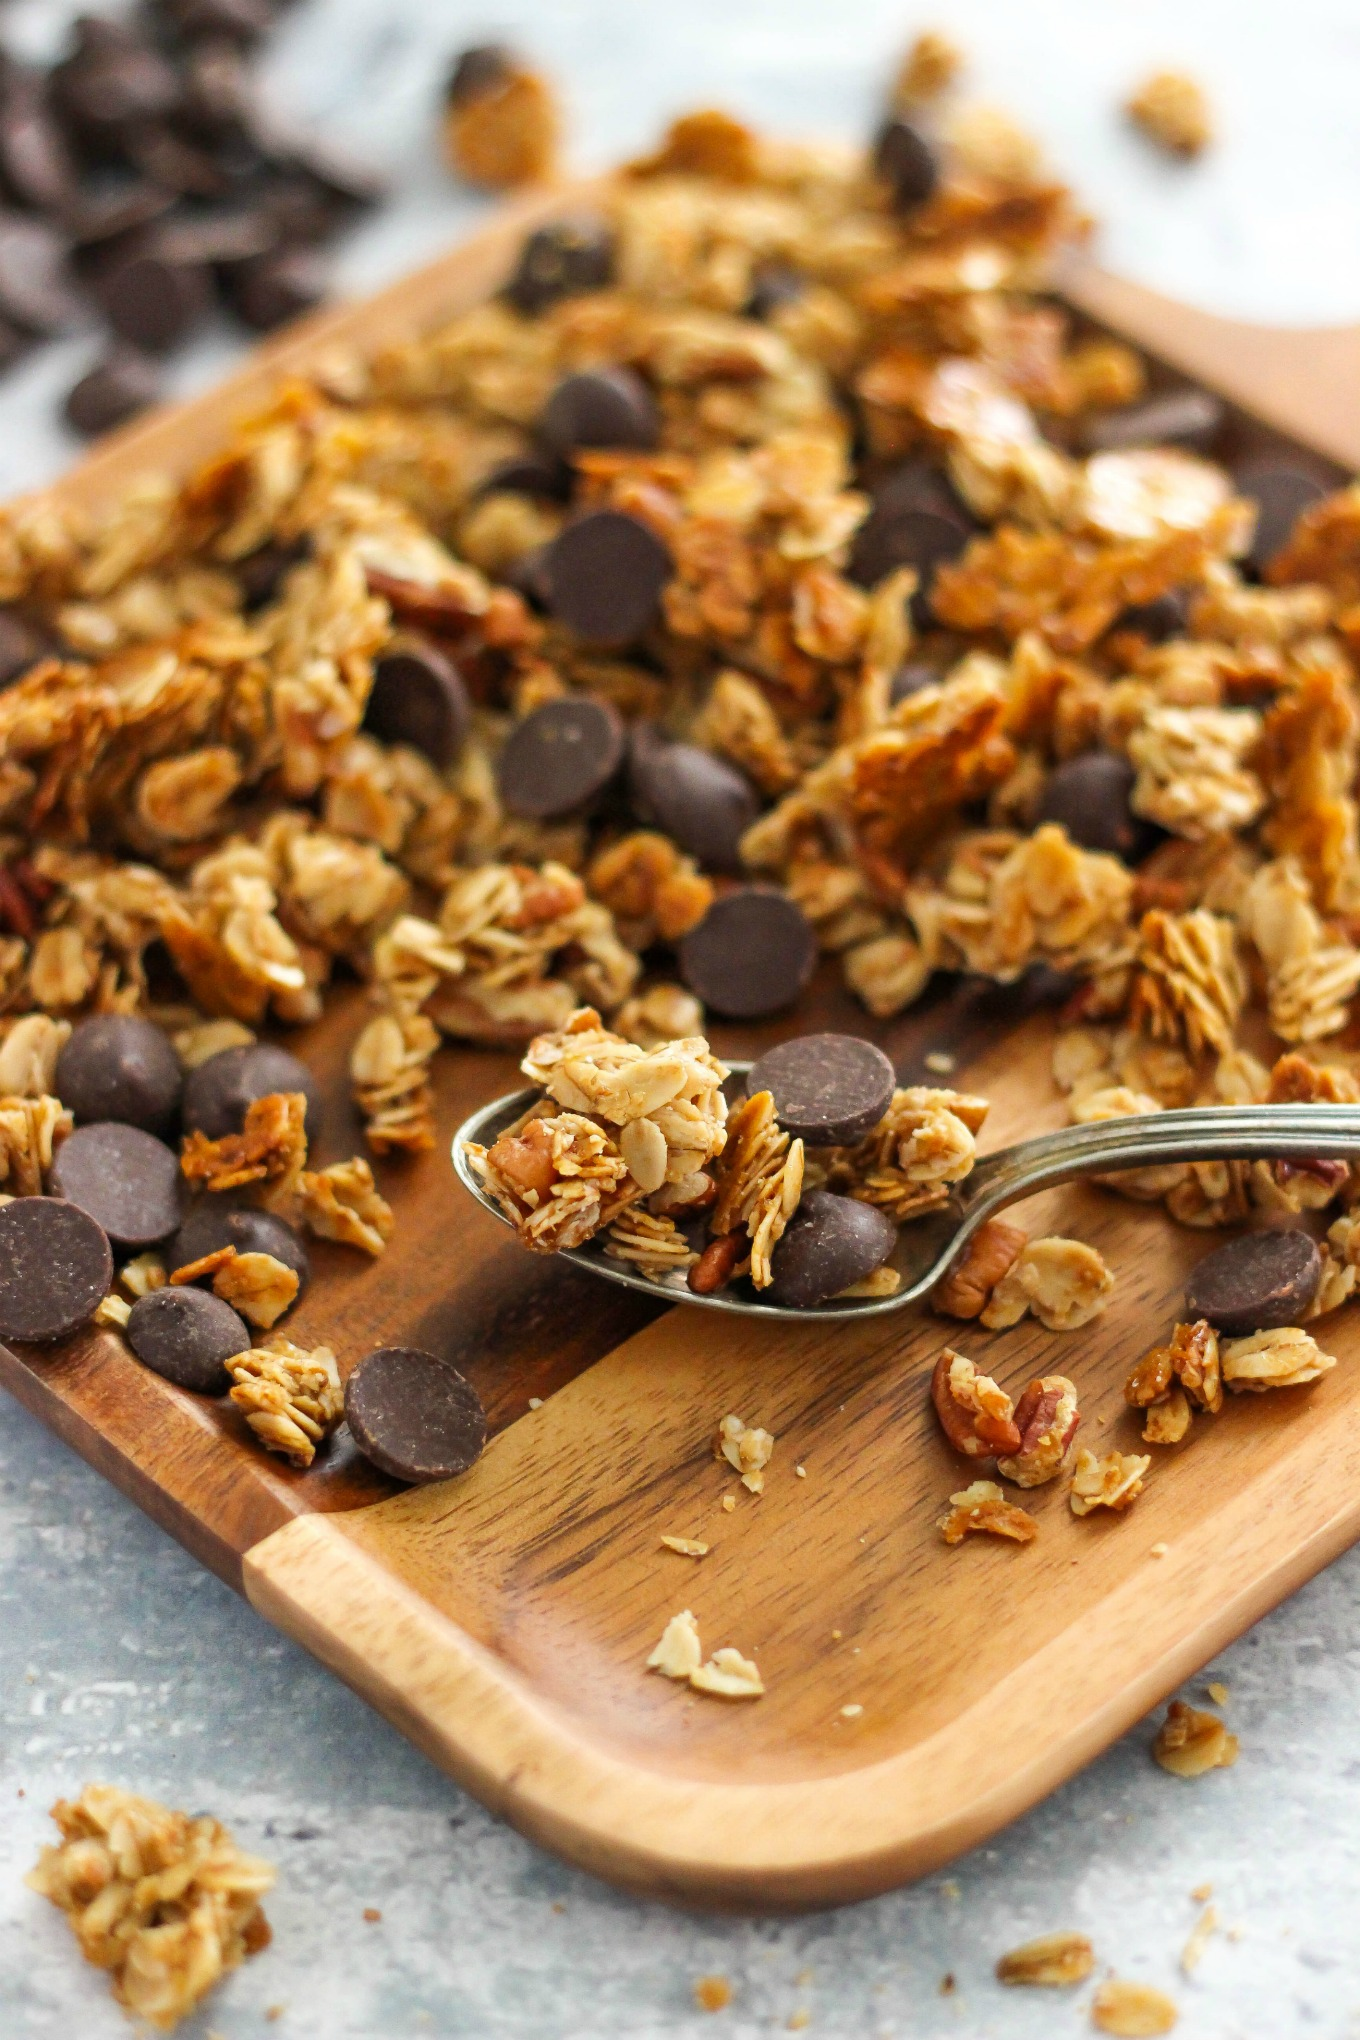 5-Ingredient Chocolate Chip Granola Recipe is an easy and healthy breakfast, snack, or topping option for yogurt and ice cream.